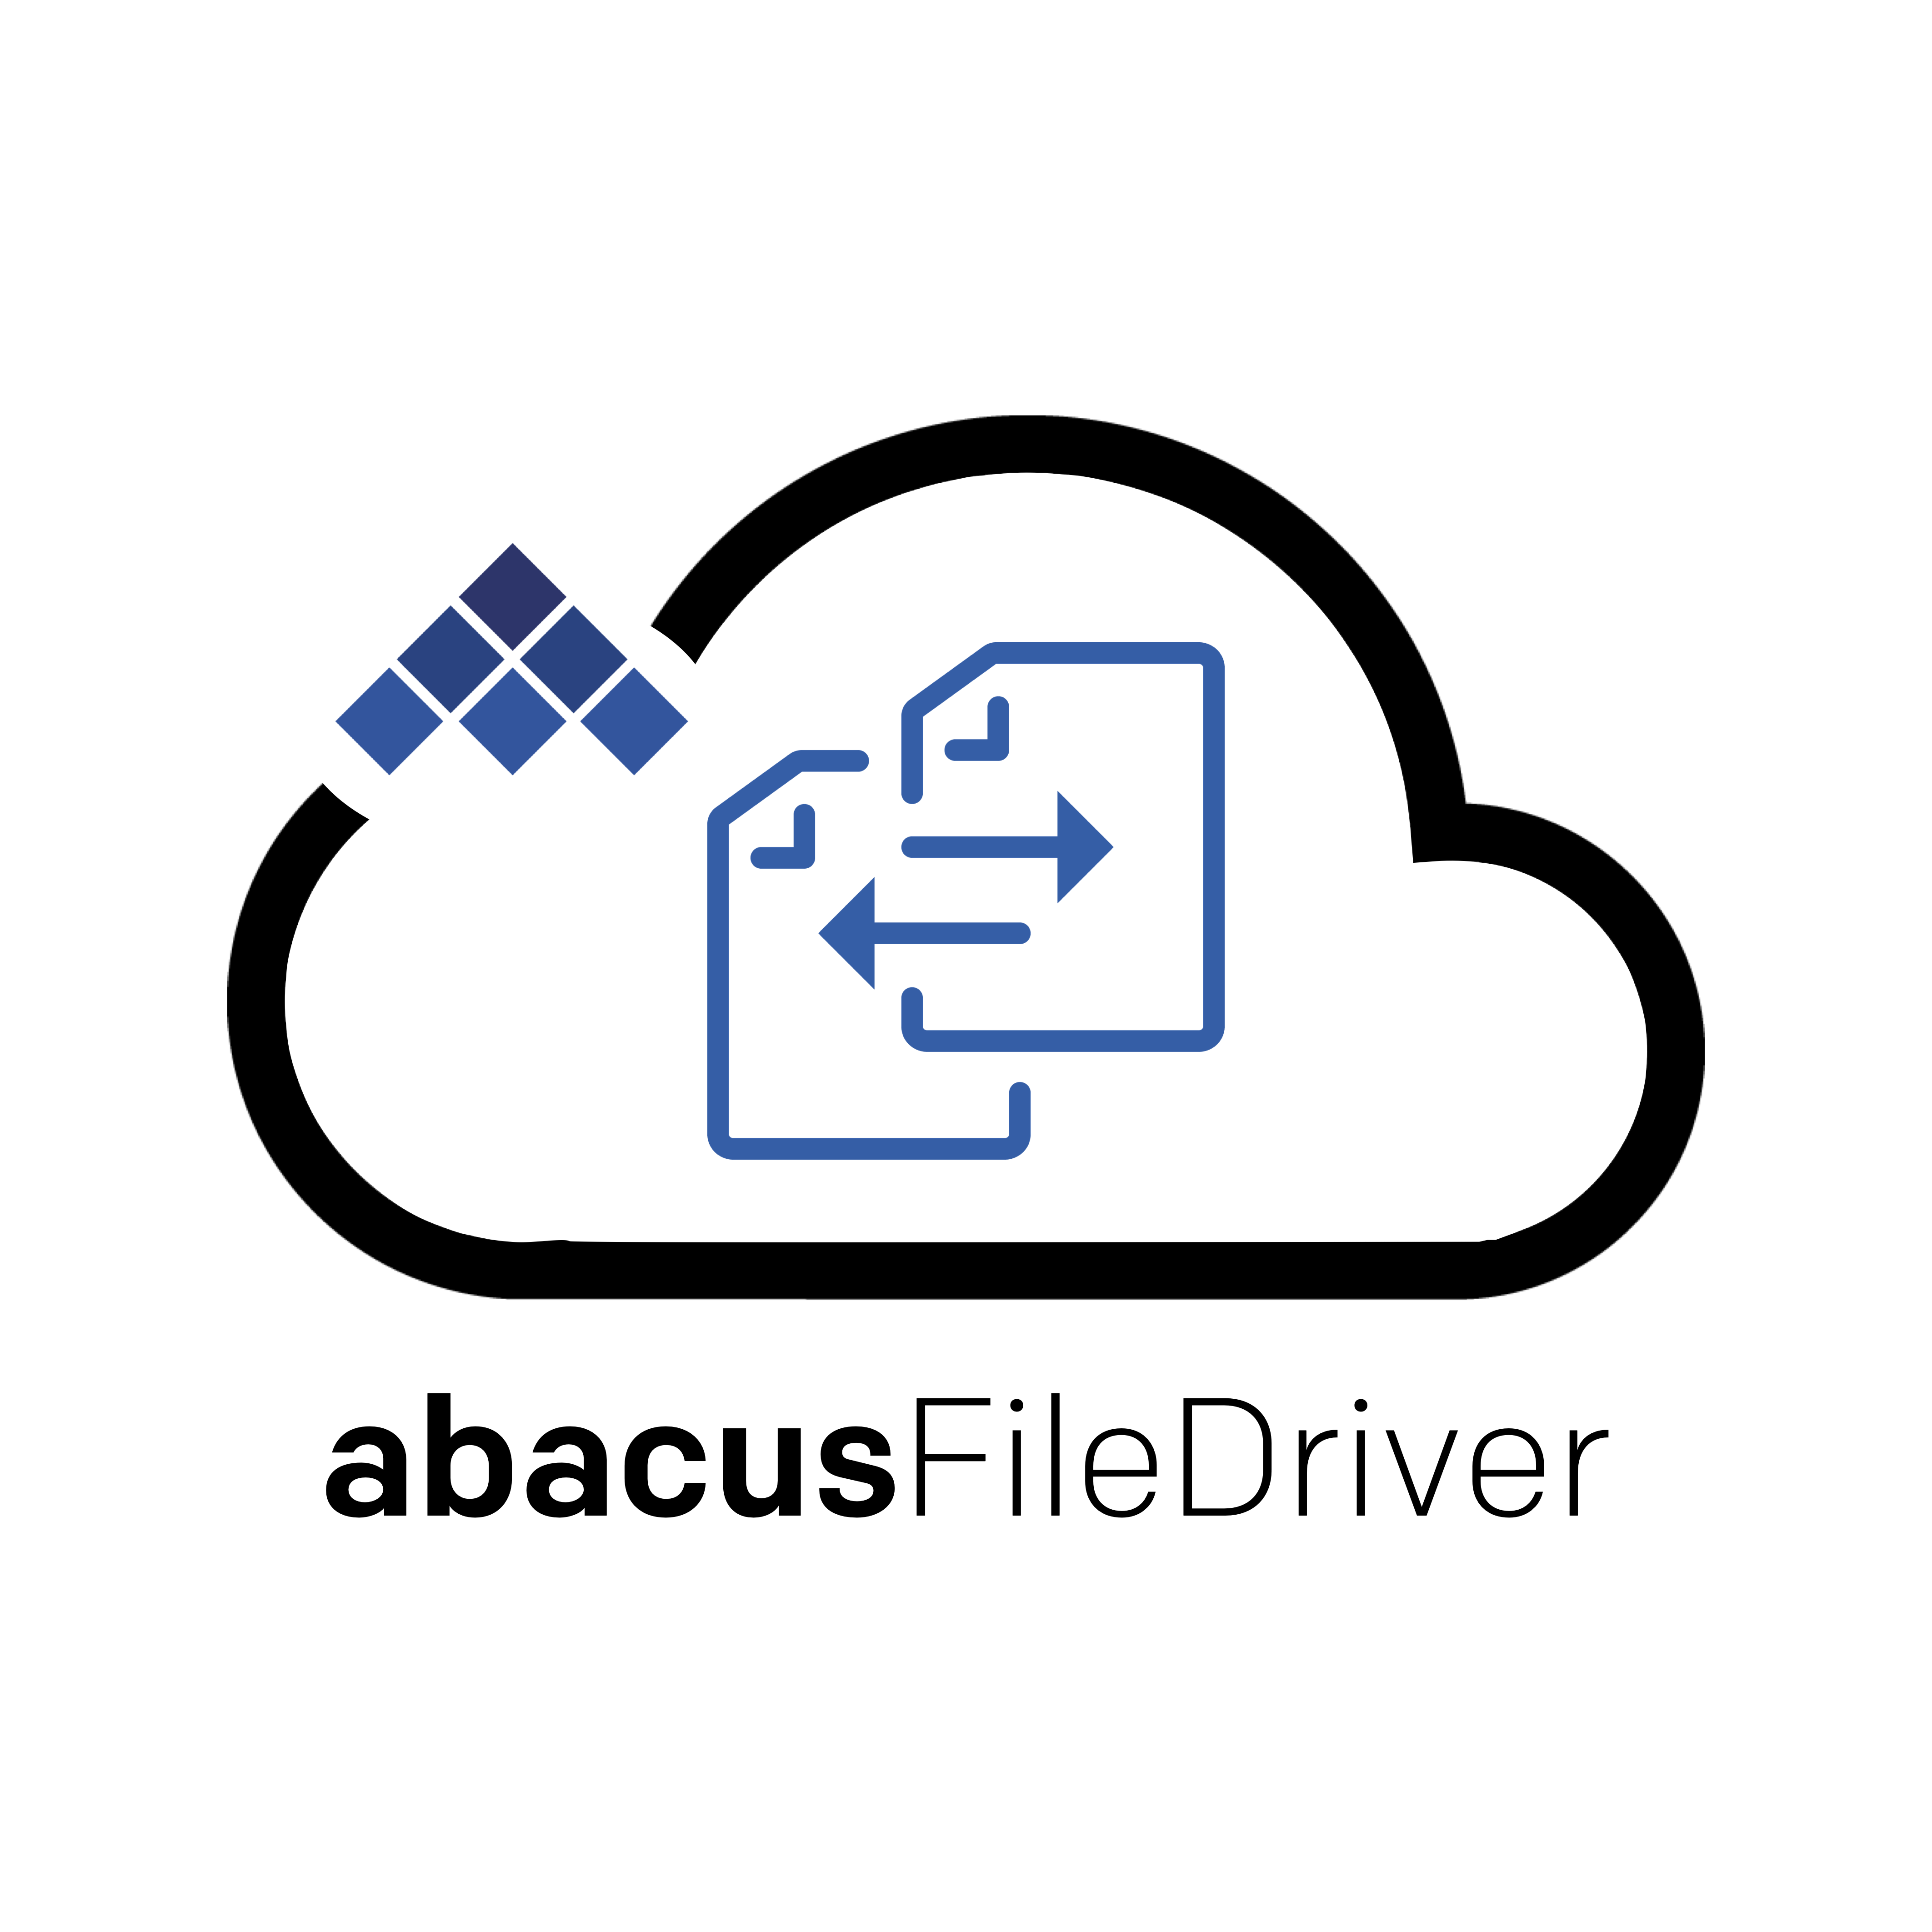 abacusFileDriver